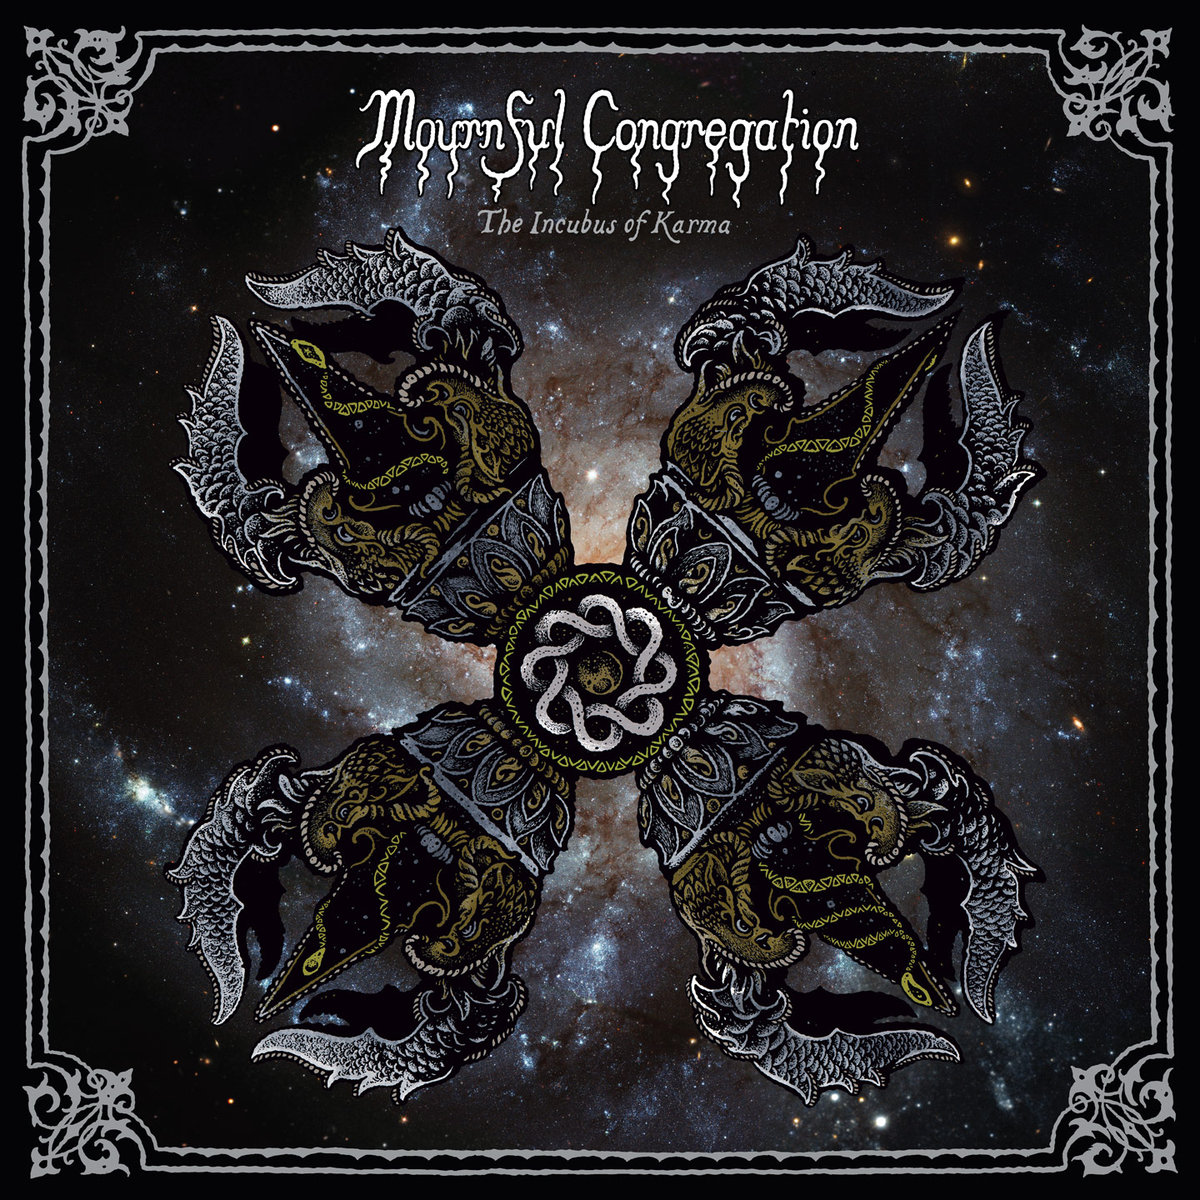 MOURNFUL CONGREGATION - The Incubus of Karma - Ltd Gatefold Double LP